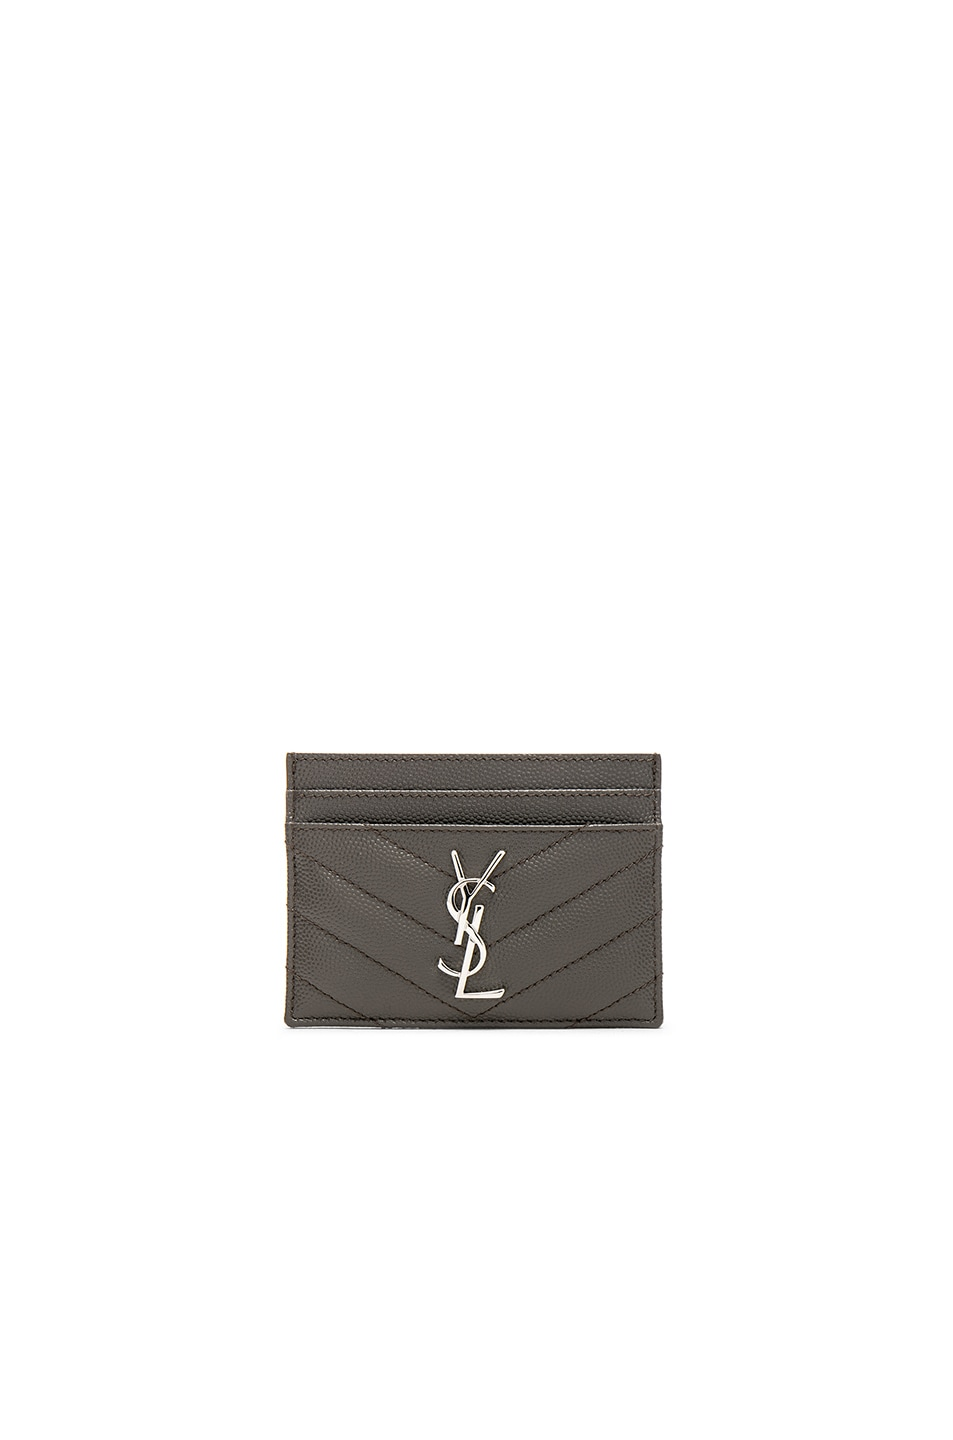 Image 1 of Saint Laurent Monogramme Credit Card Case in Earth